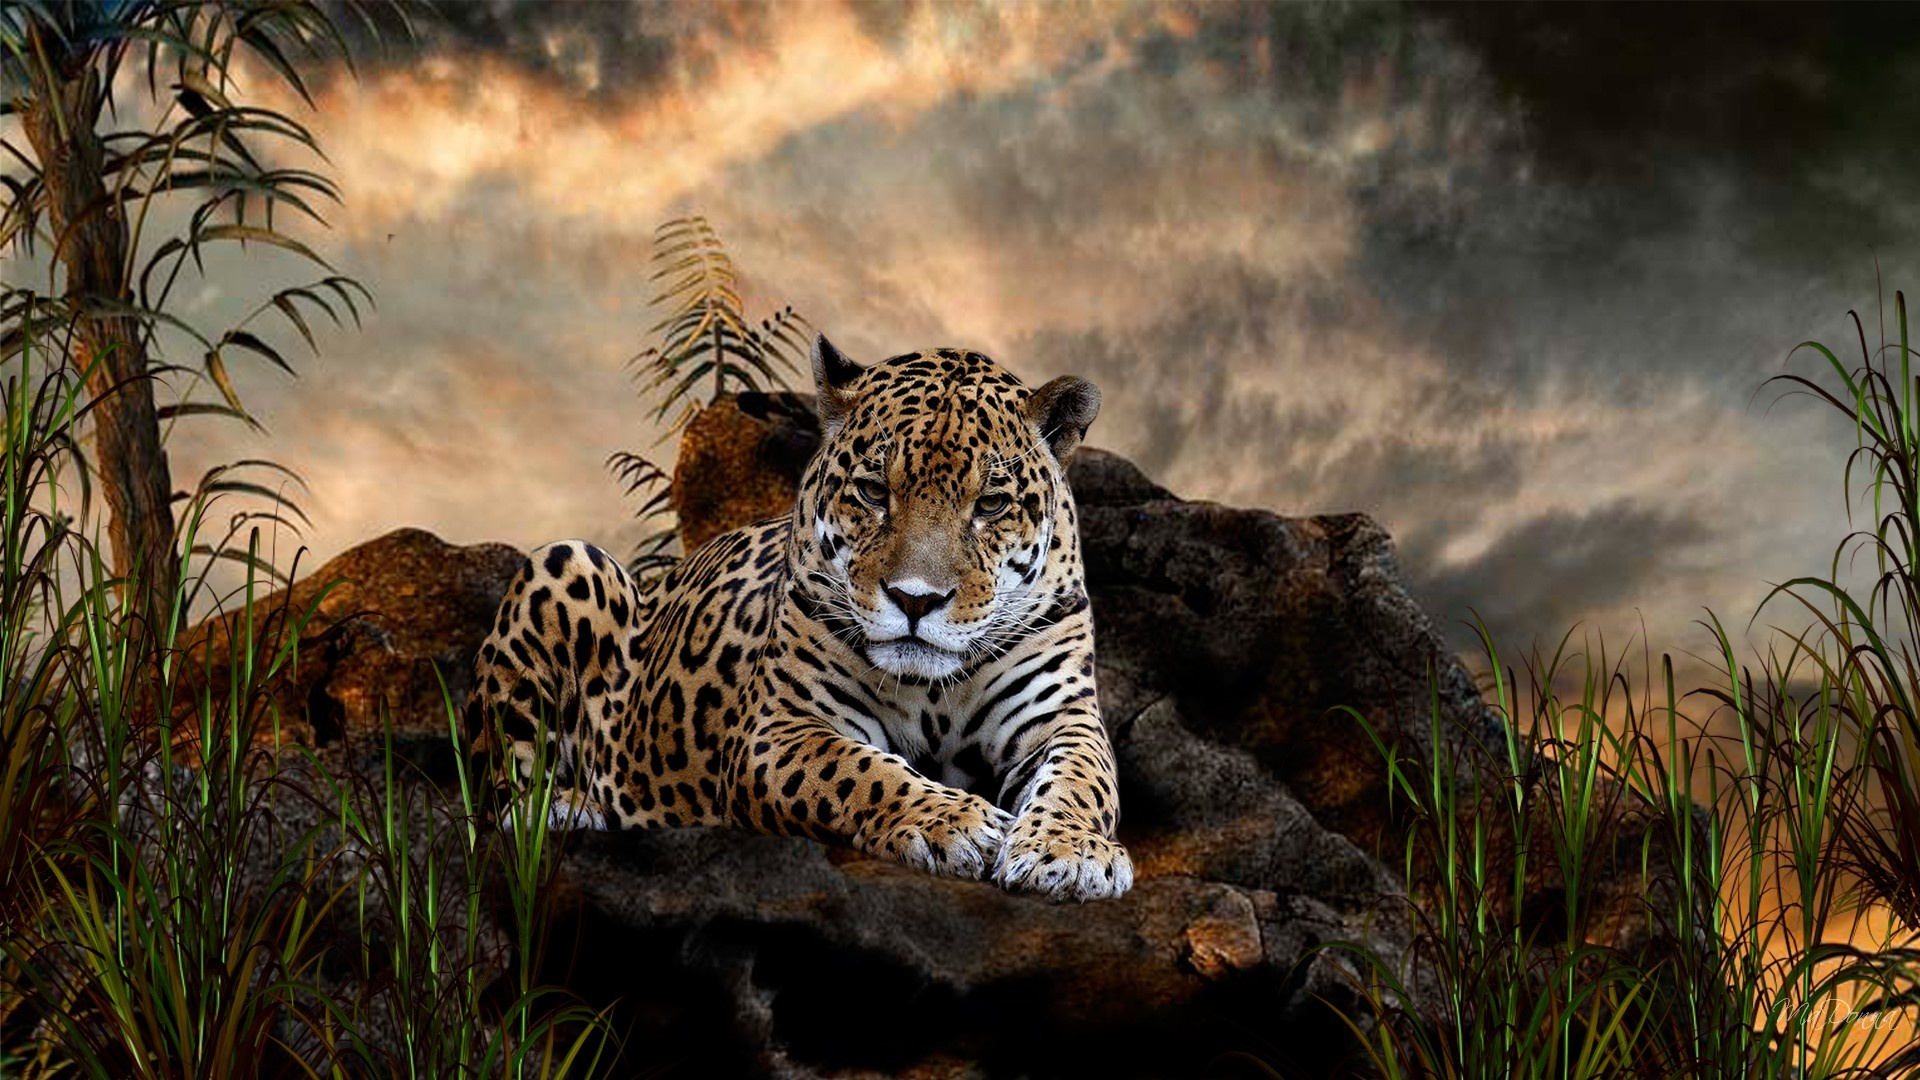 Big Cats   Wild Animals Wallpaper 34365415 1920x1080